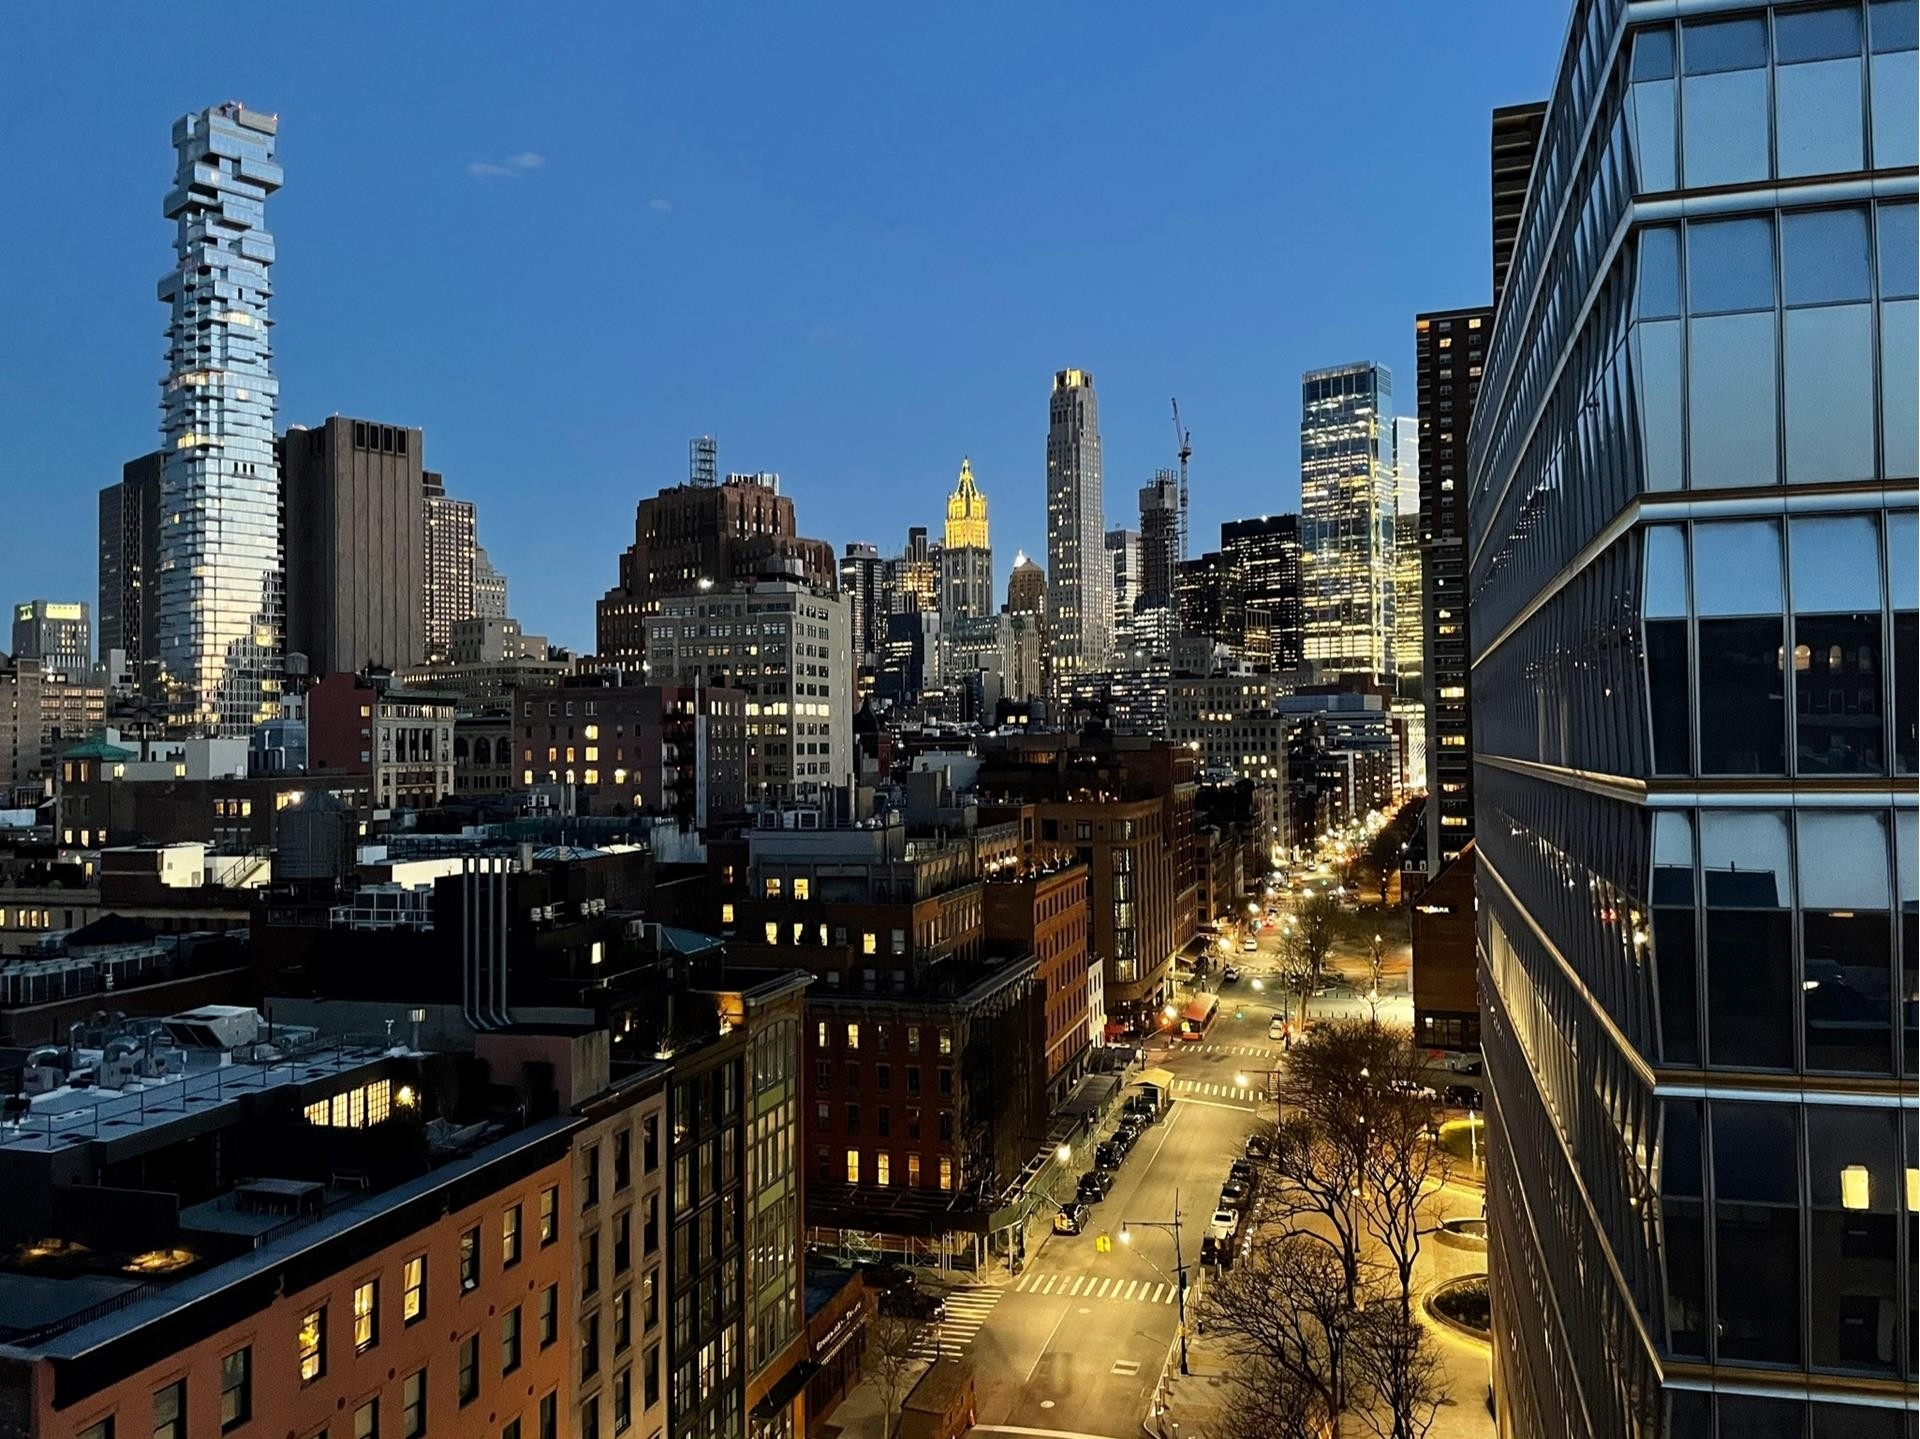 12. Condominiums for Sale at 408 GREENWICH ST , PH TriBeCa, New York, NY 10013